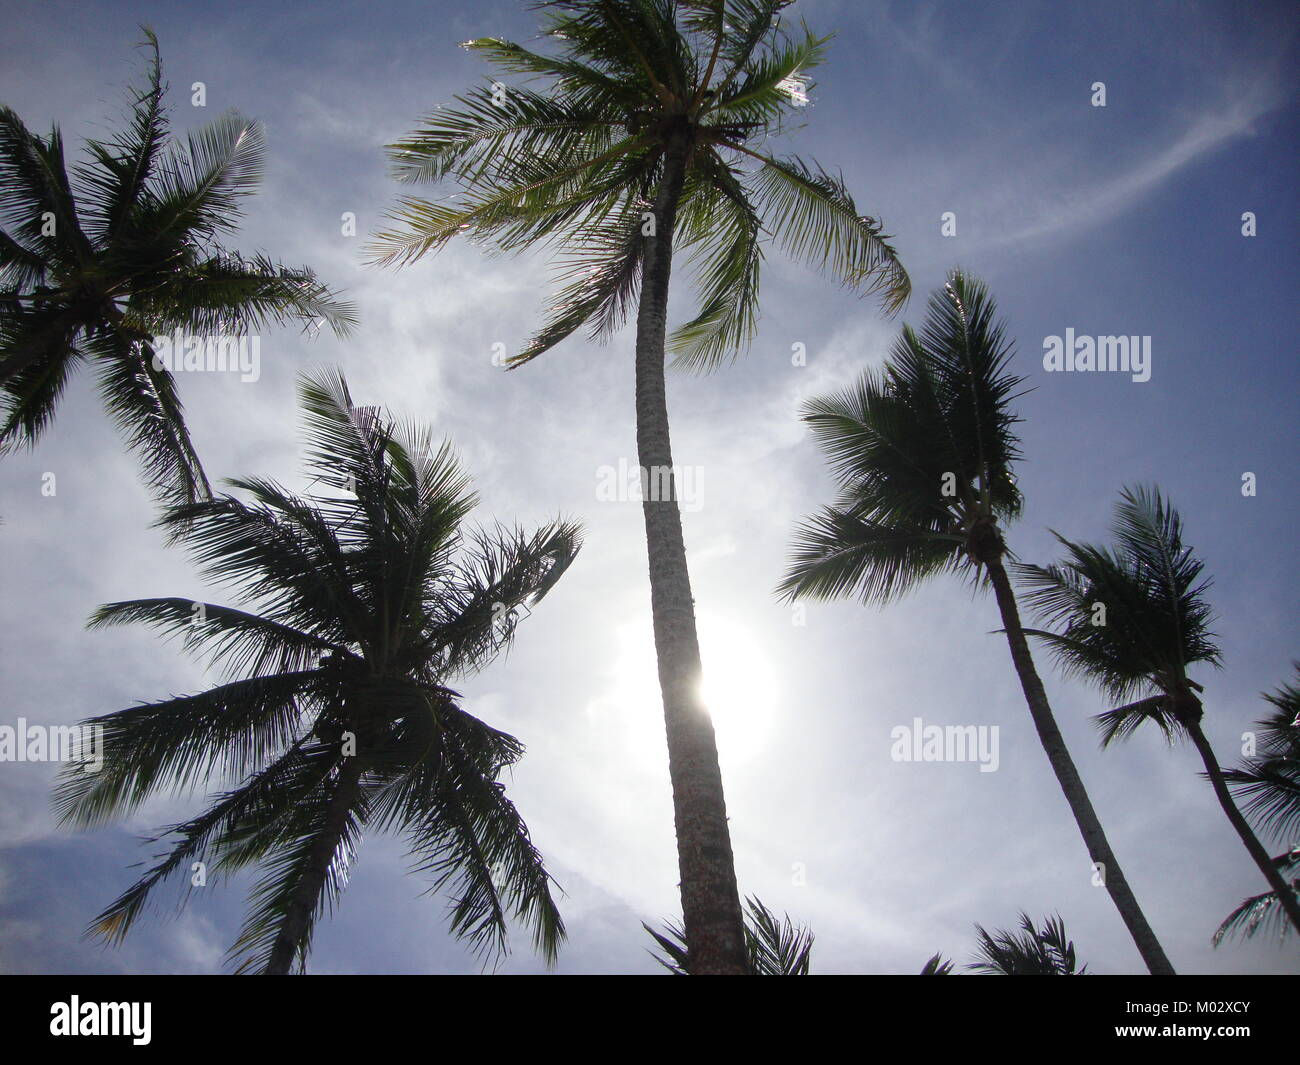 Brazilian palm trees againt the sun - Stock Image